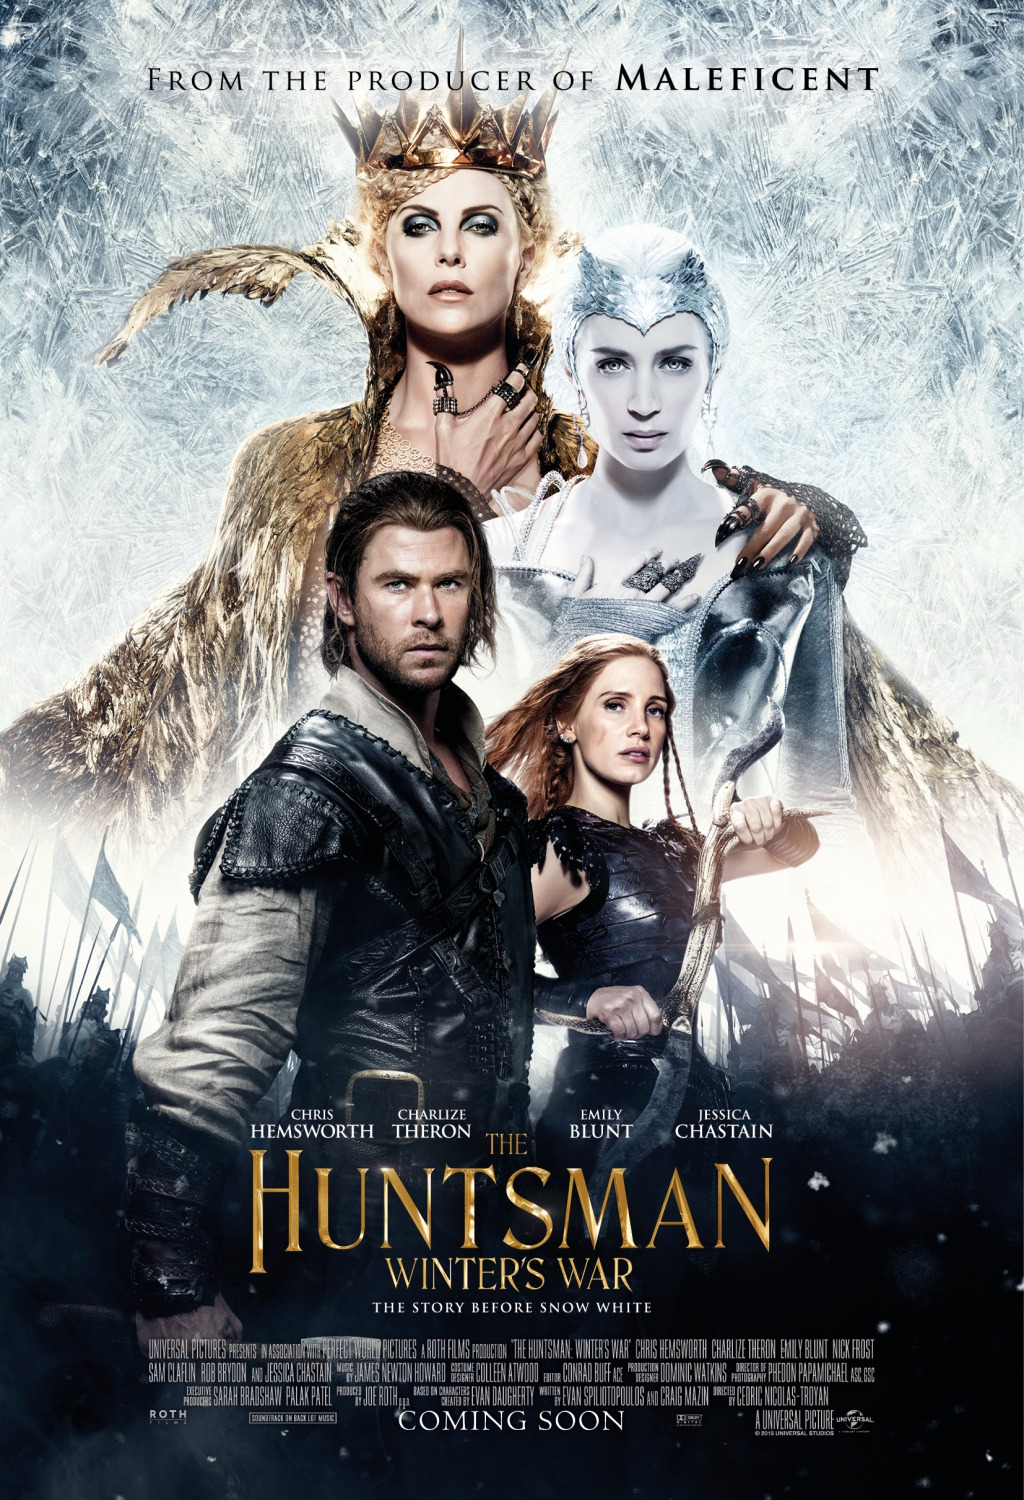 The Huntsman: Winter's War (2016) - IMDb